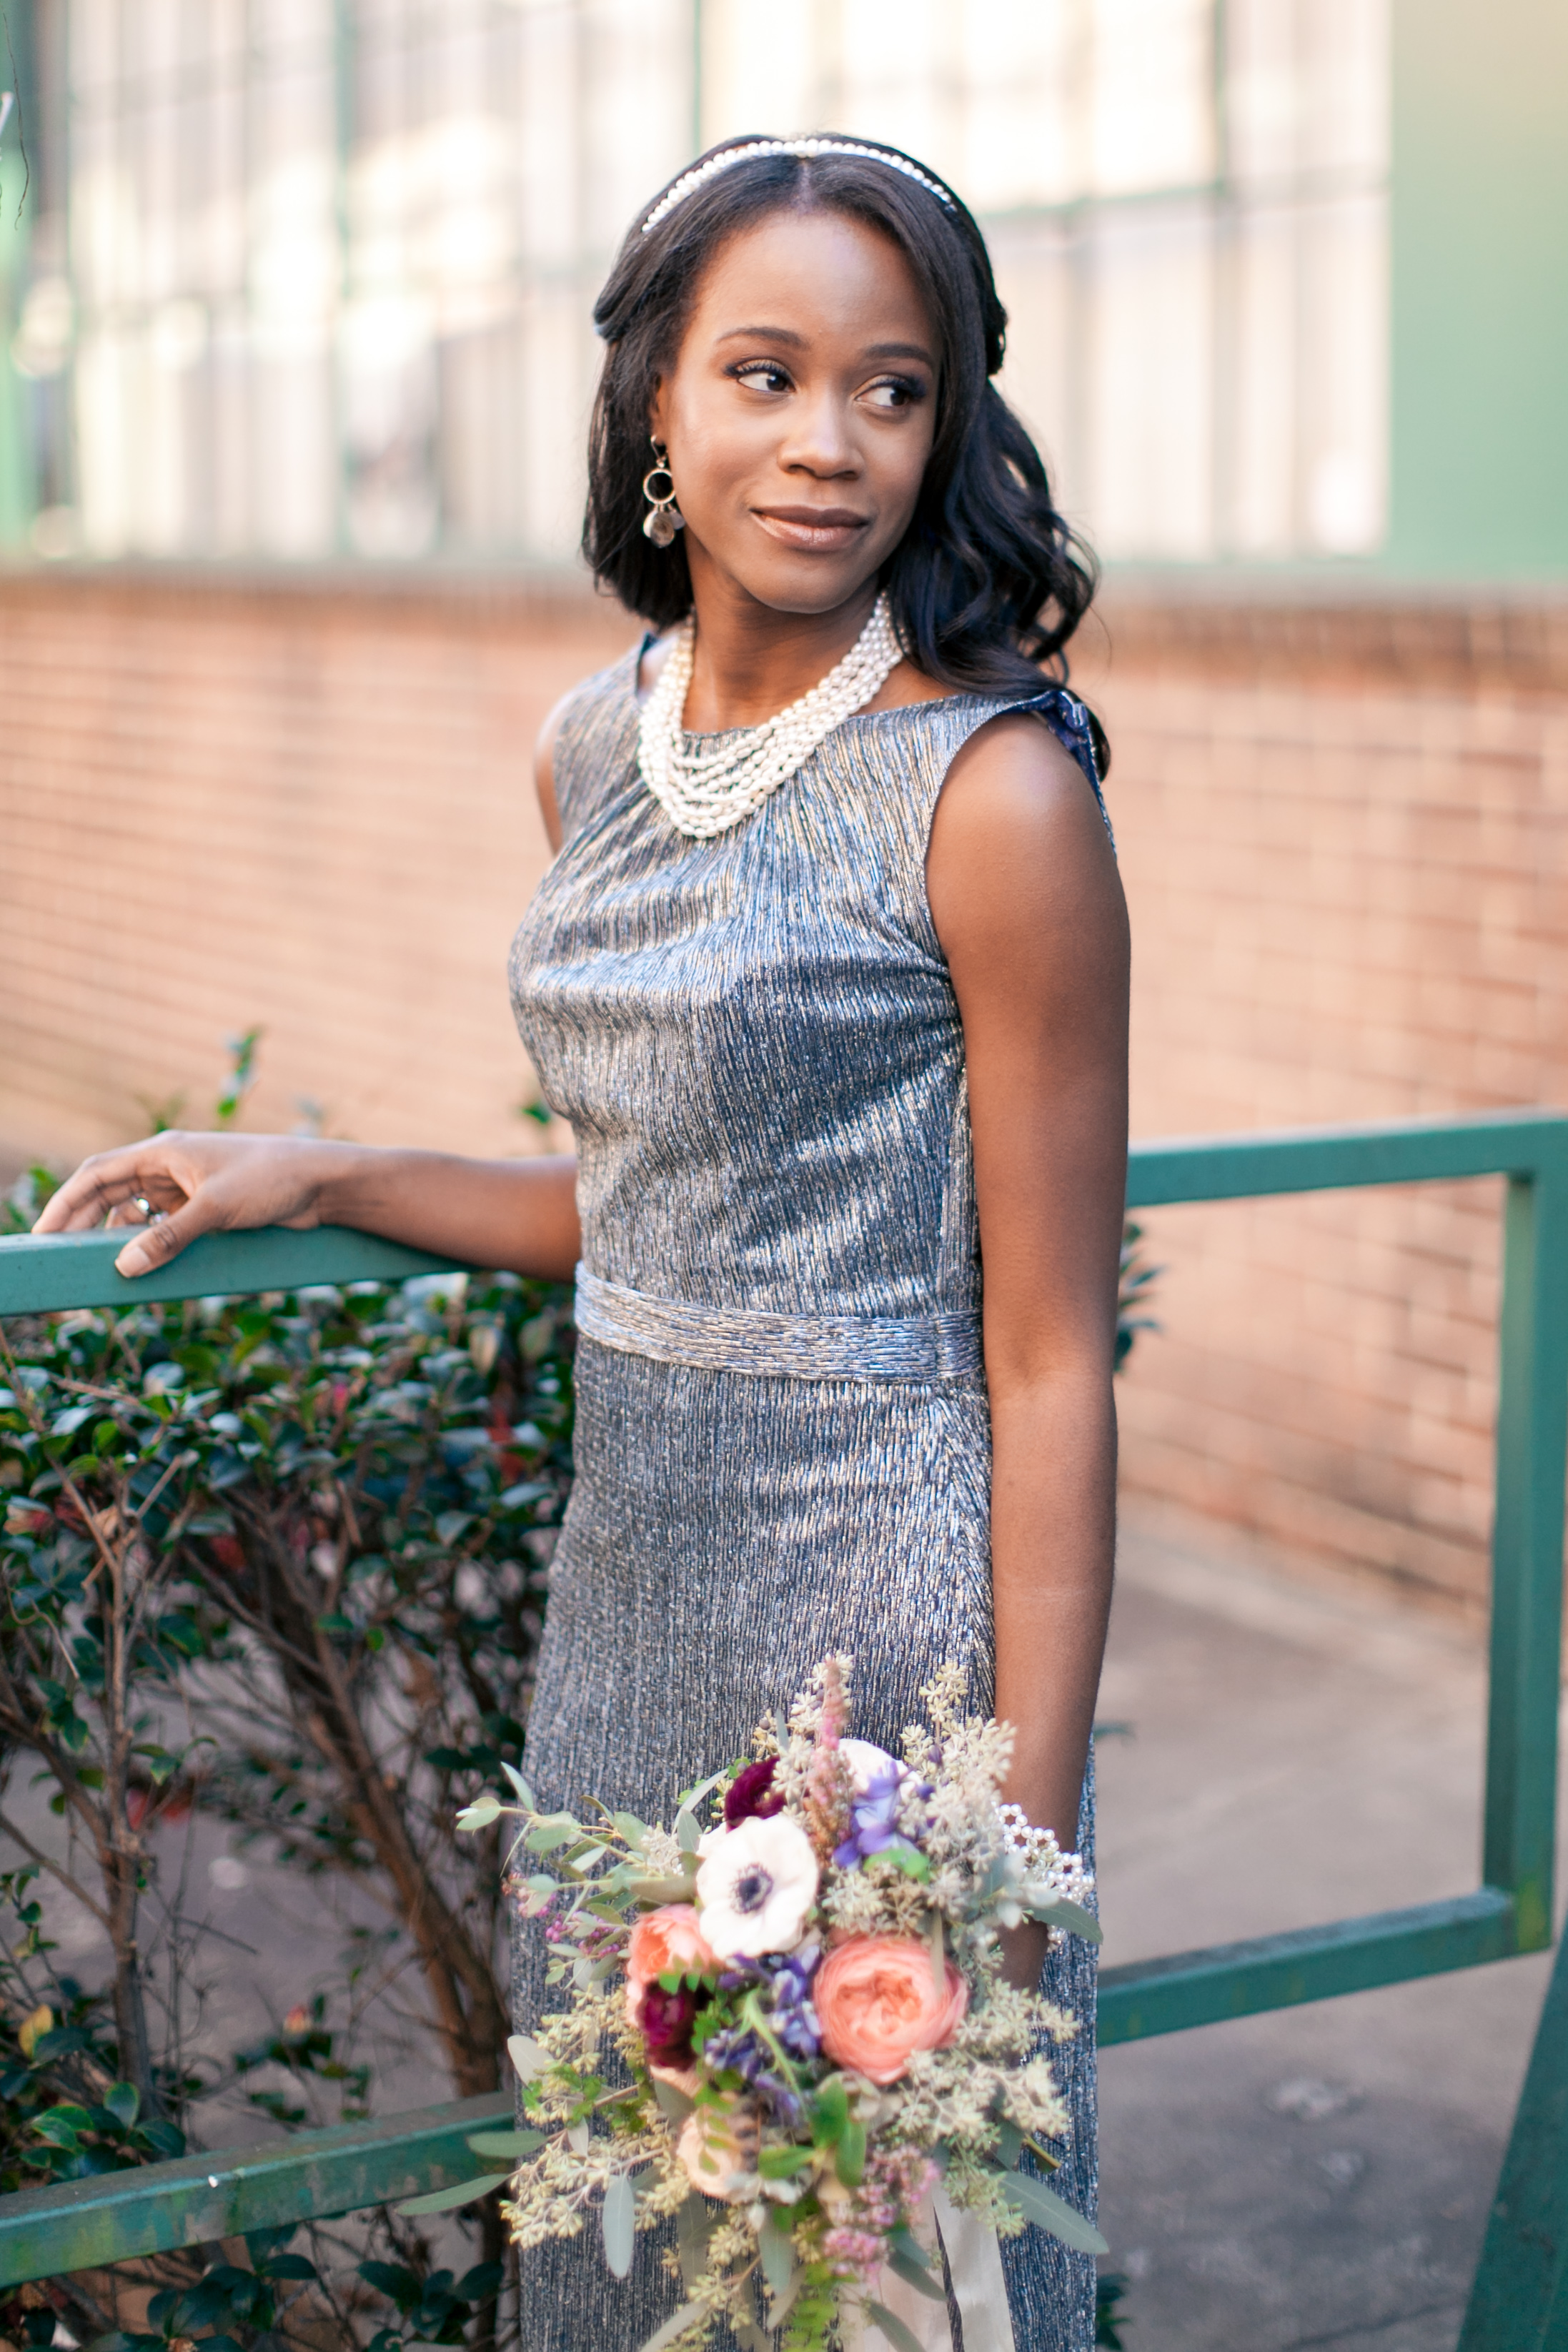 Shimmering bridesmaid dress with lush, natural flowers // Southeast Wedding Floral Designer